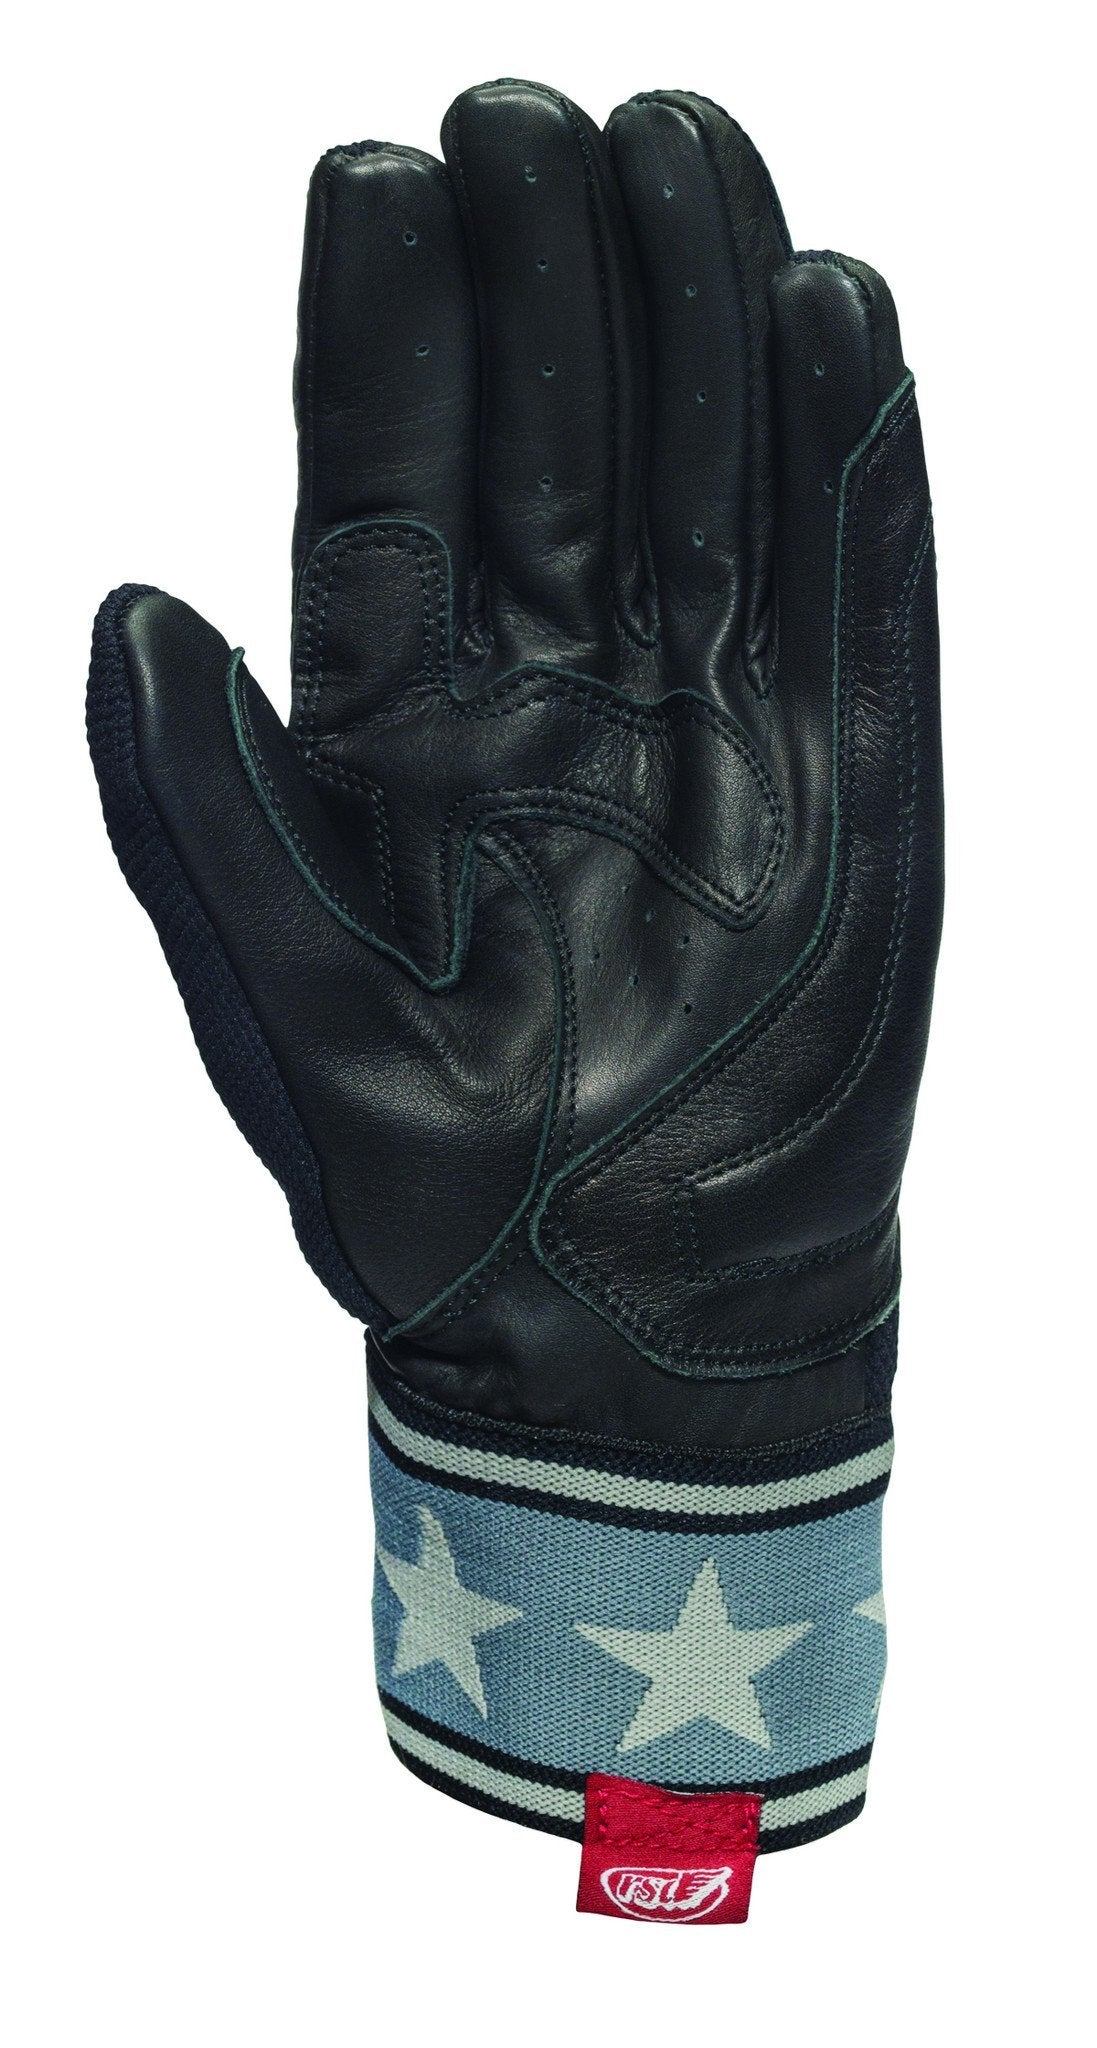 Roland Sands Design - Roland Sands Design Peristyle Gloves - Black - Gloves - Salt Flats Clothing